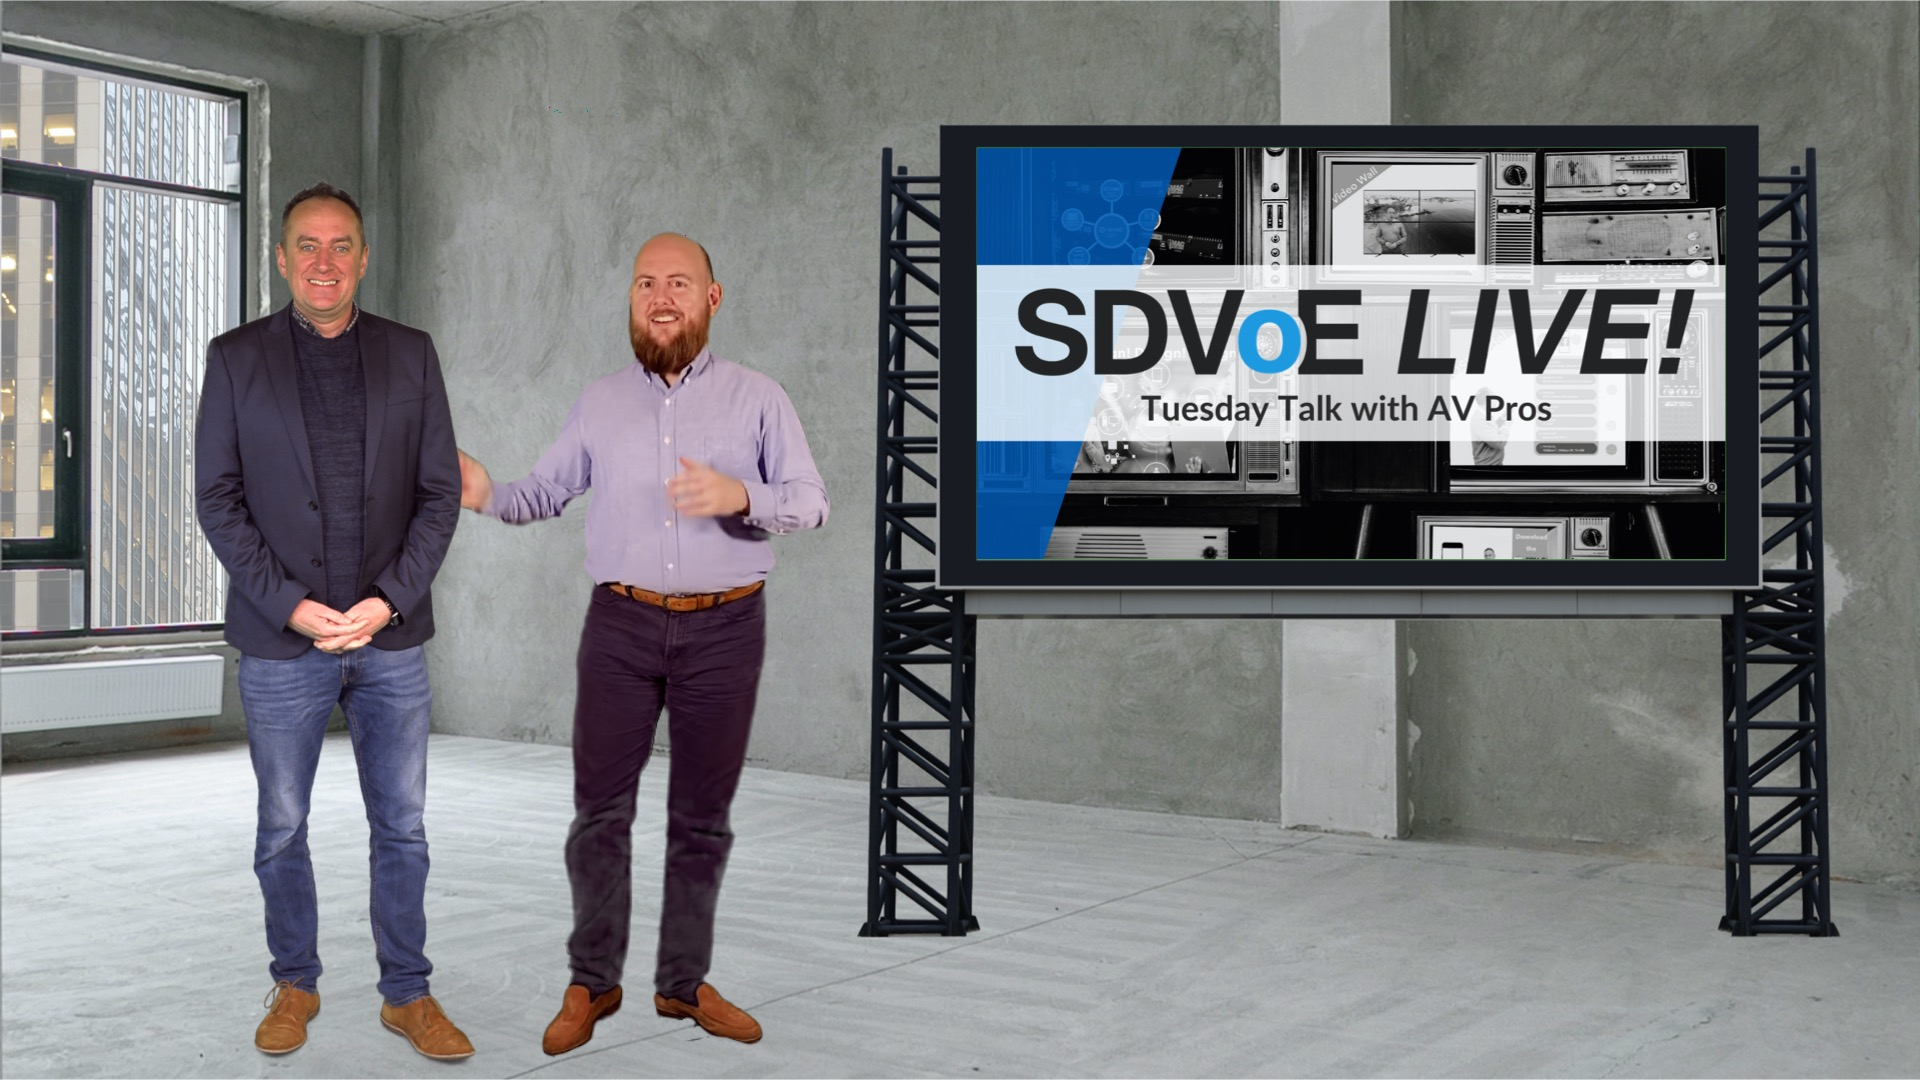 SDVoE LIVE! Episode 9: It's 1:00. Do You Know Where Your Network Is?